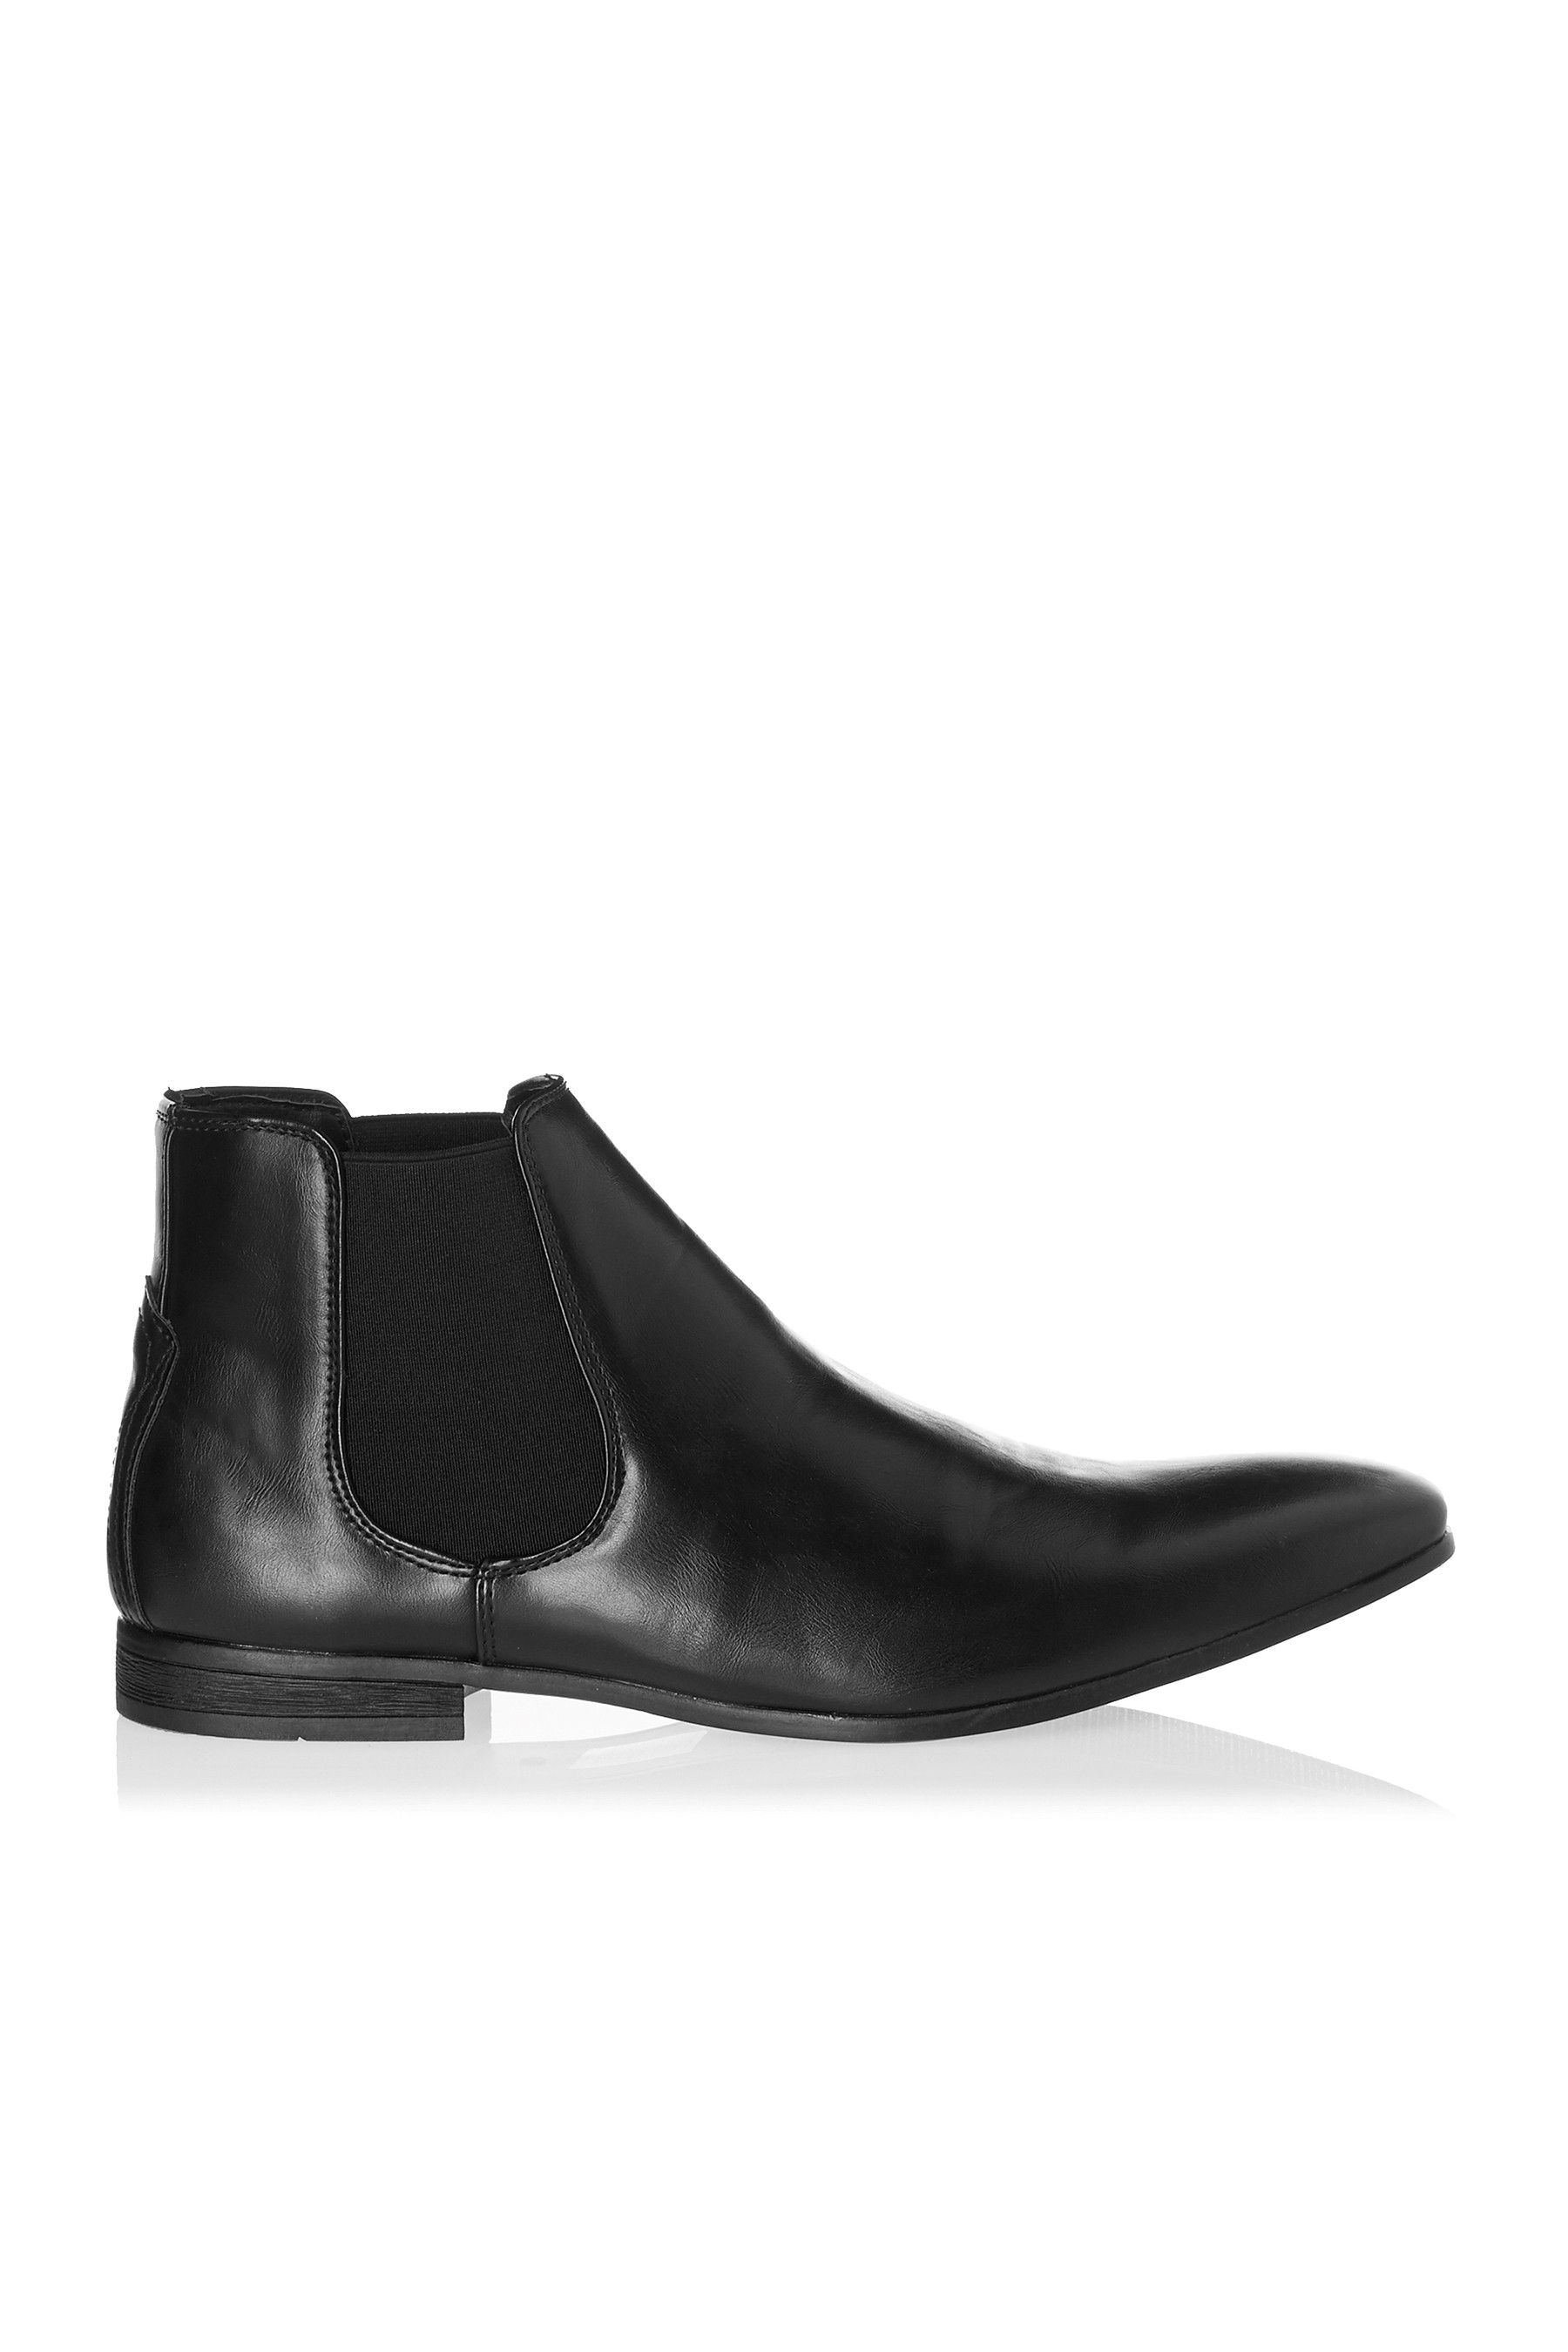 Mens Boohoo Man Chelsea Boot Black in 2019 | Products